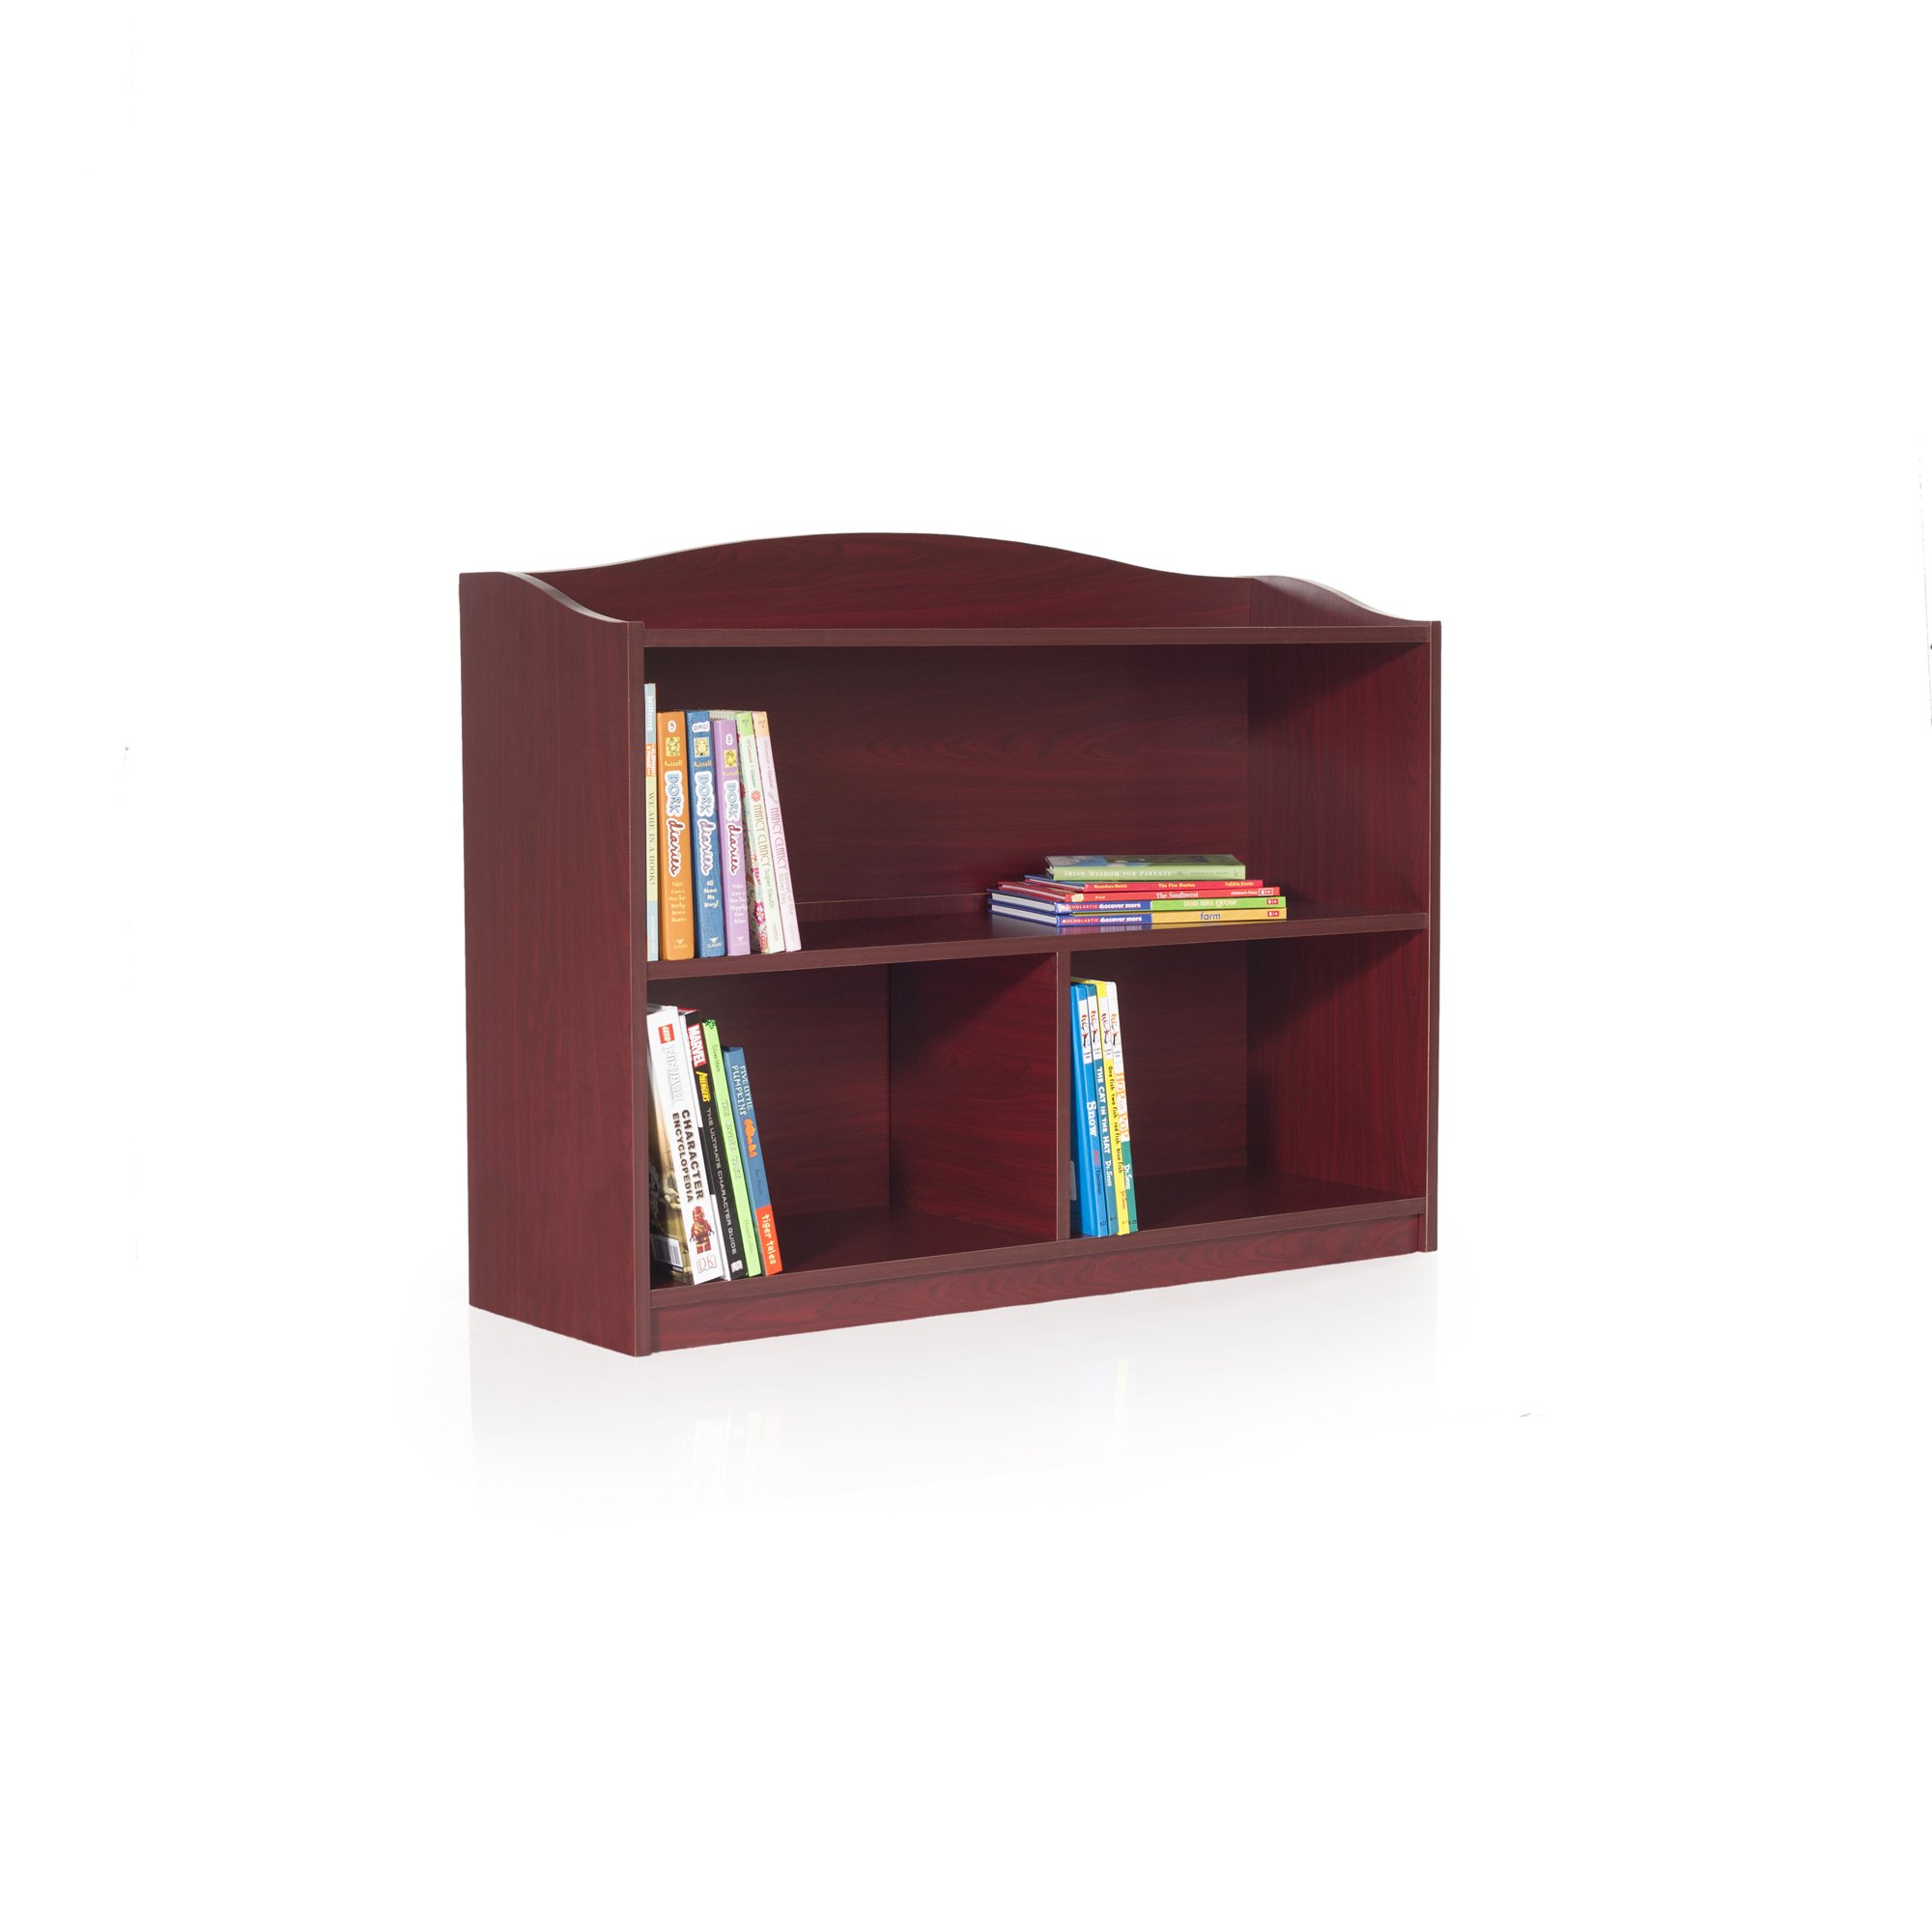 Guidecraft 3-Shelf Cherry Bookcase - Shelves, Home & Office Organizer Furniture, Book Display by Guidecraft (Image #1)